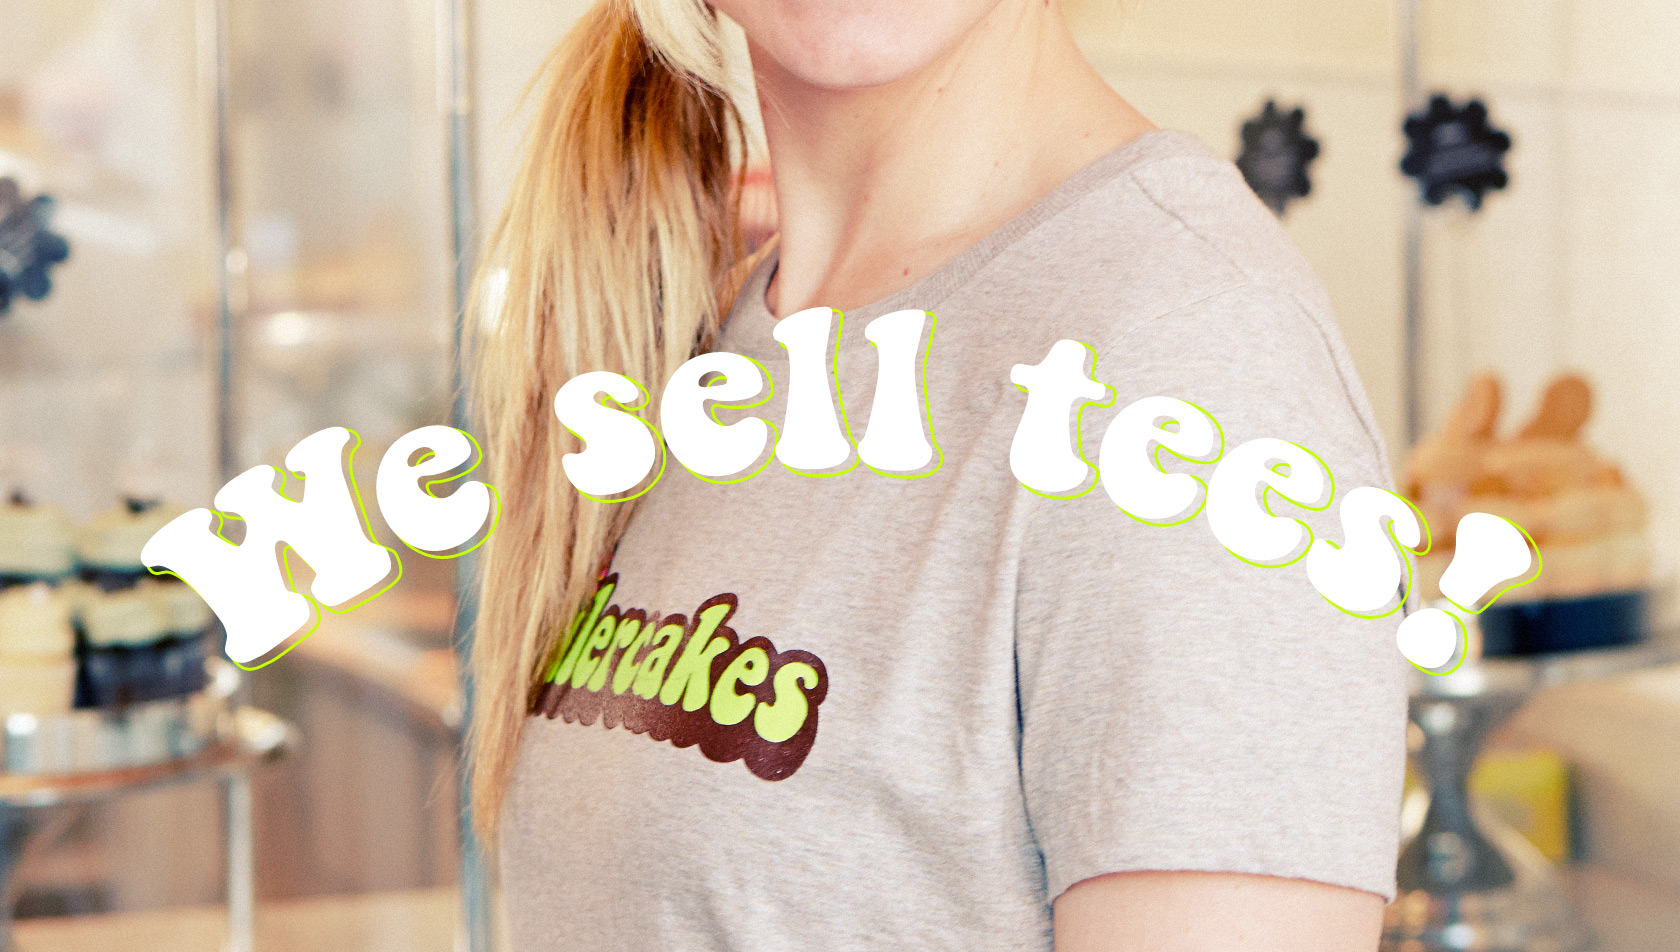 We sell tees!